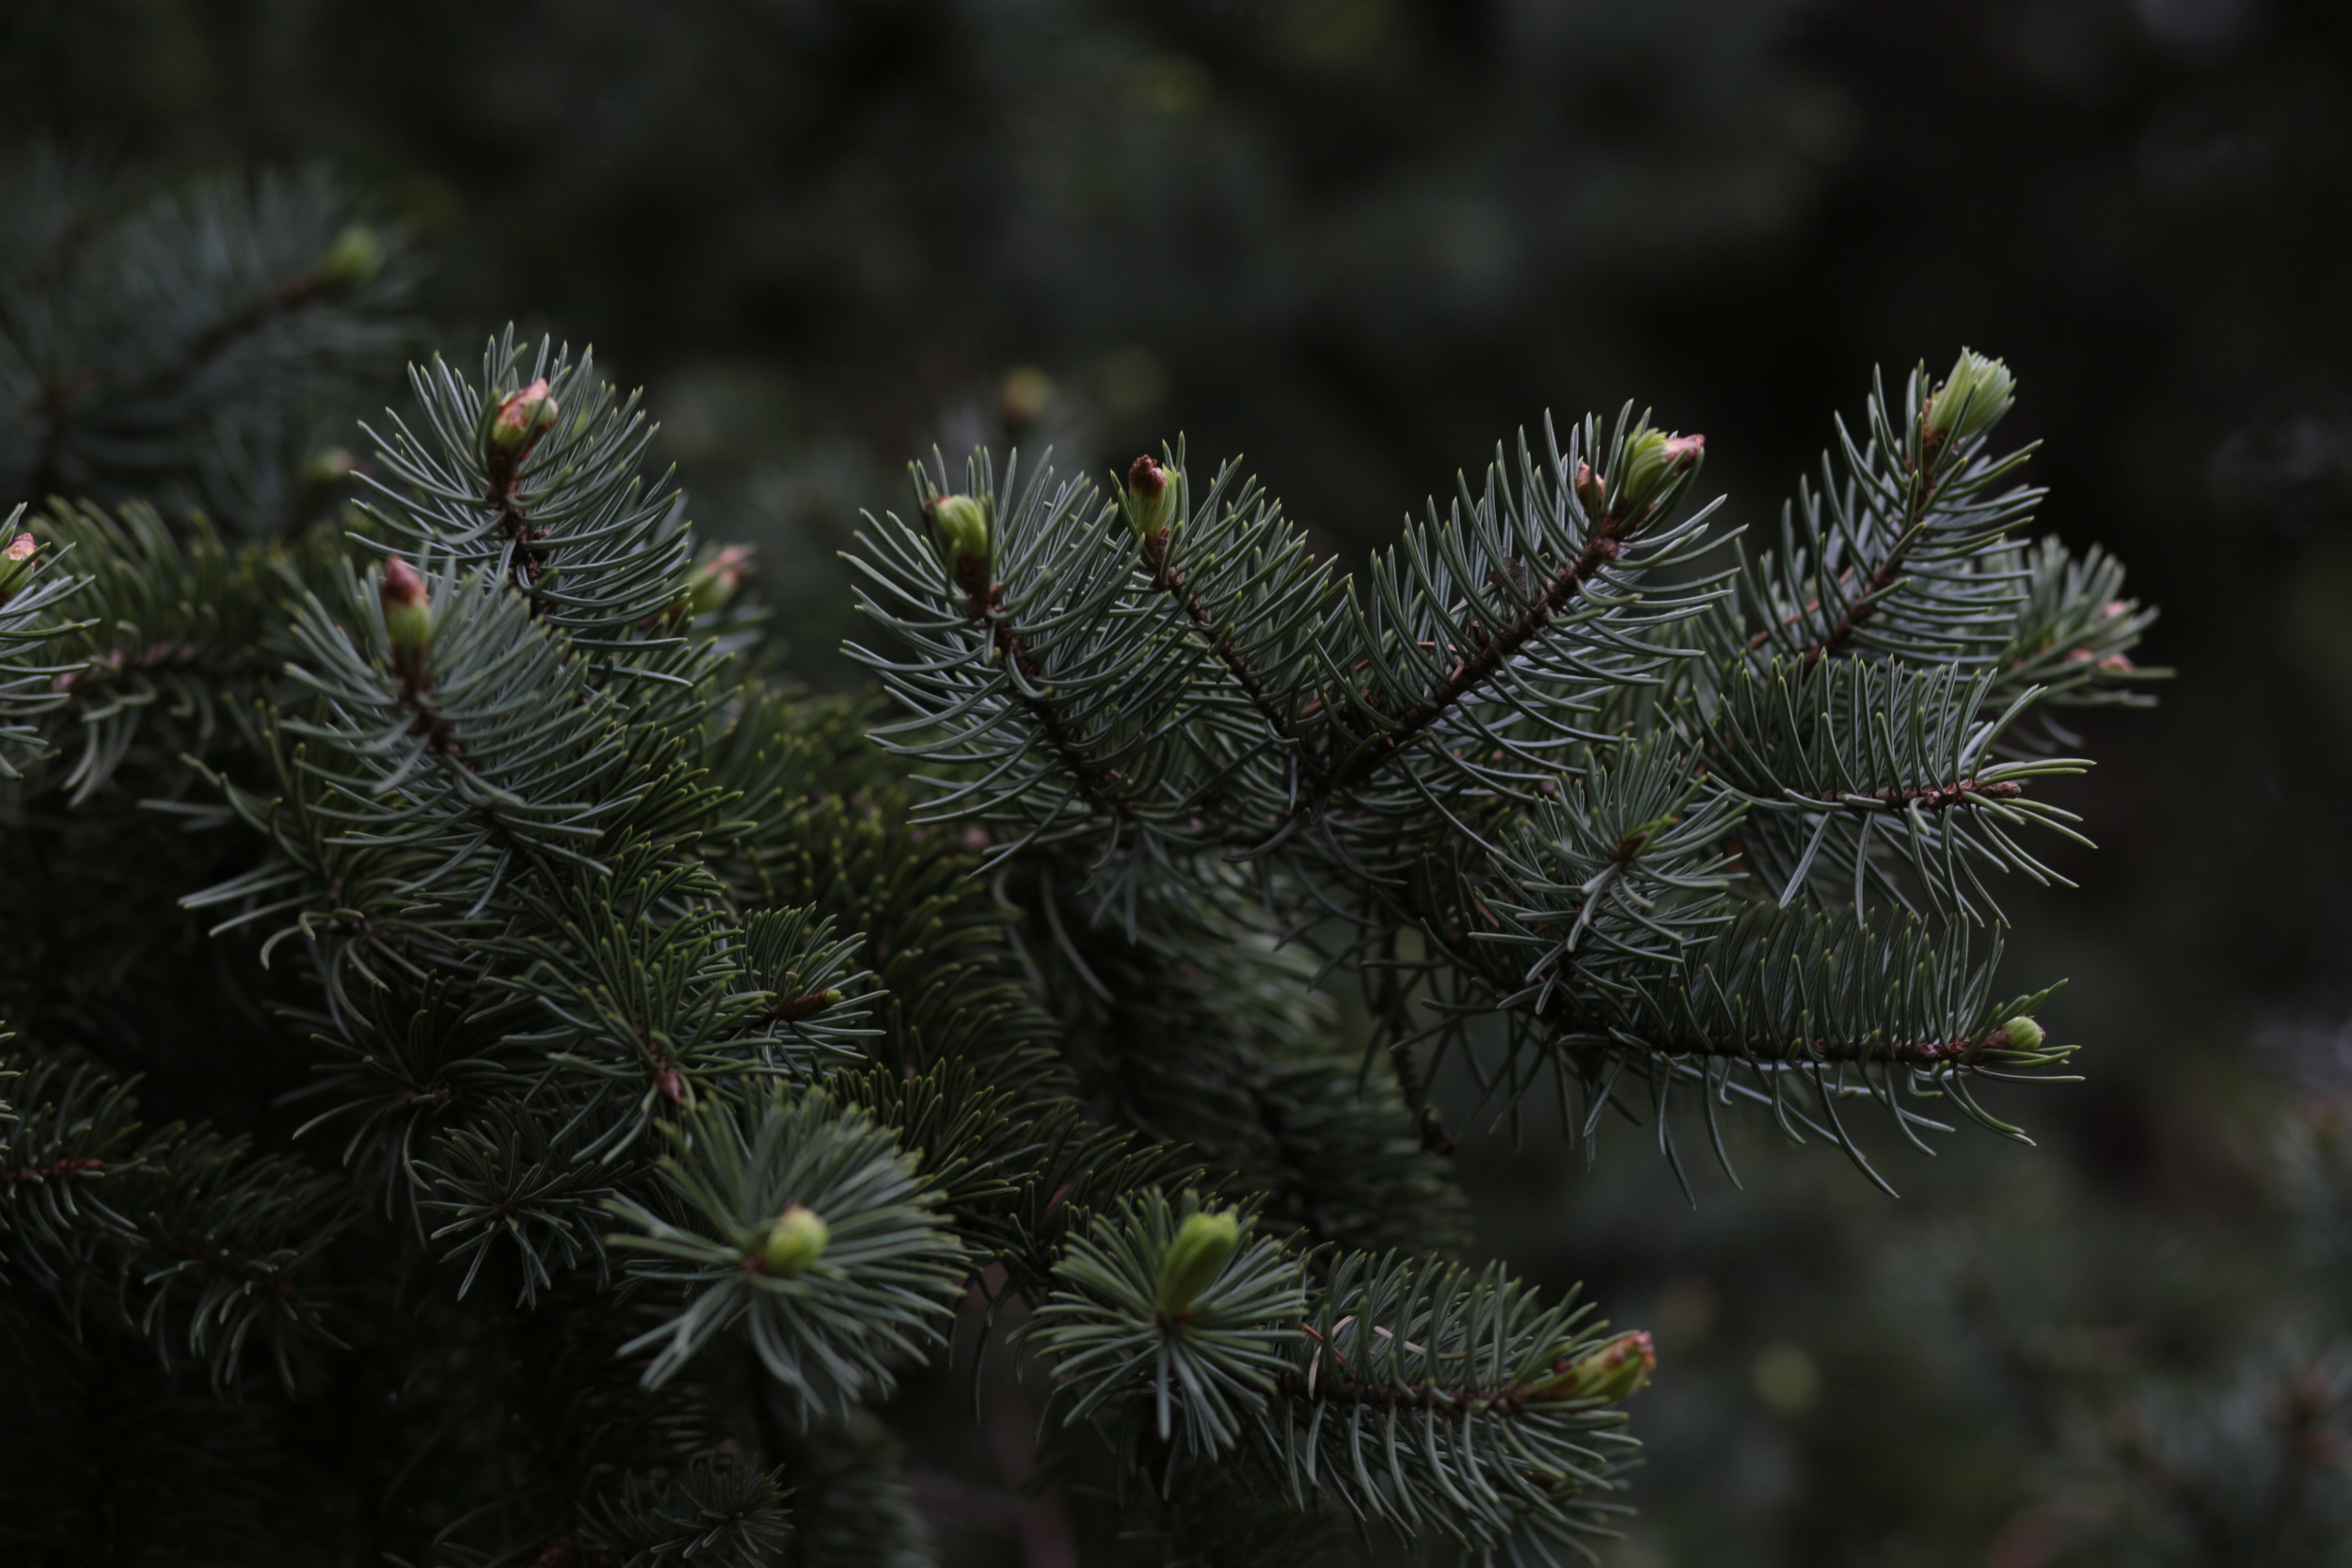 spruce tips on a branch